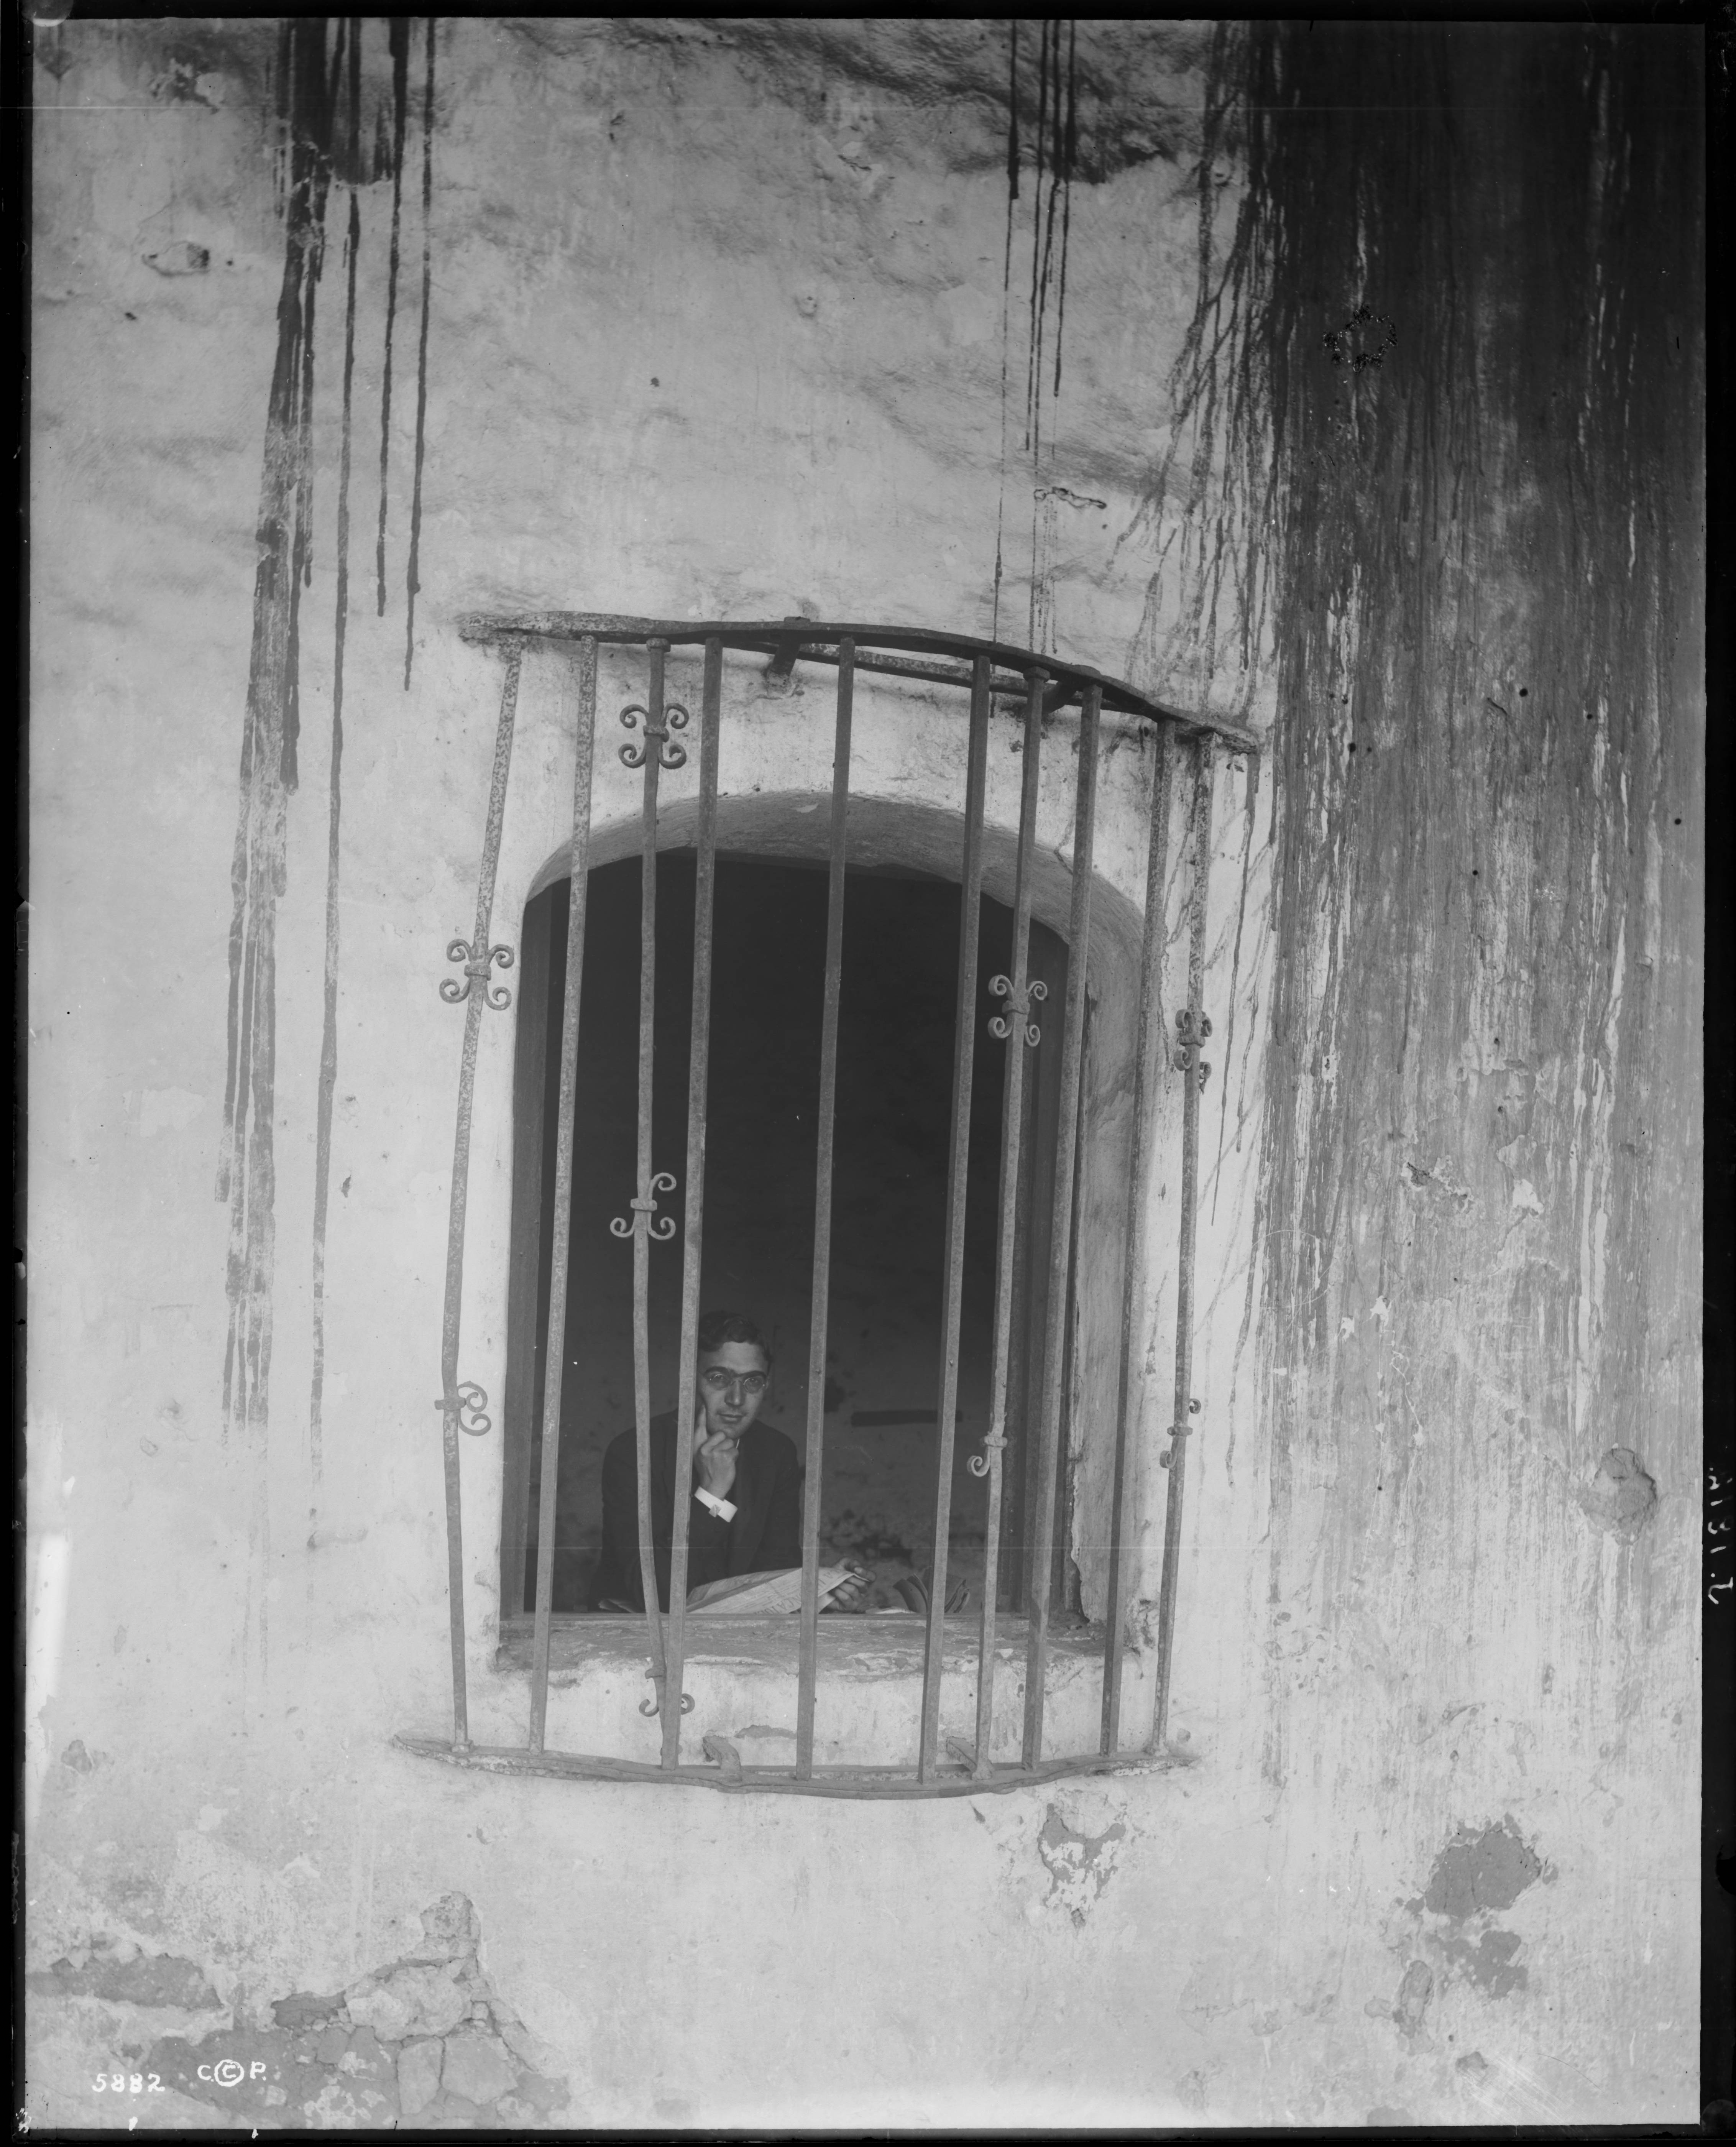 Fileportrait Of Father Aquire Liebana Looking Out From A Barred